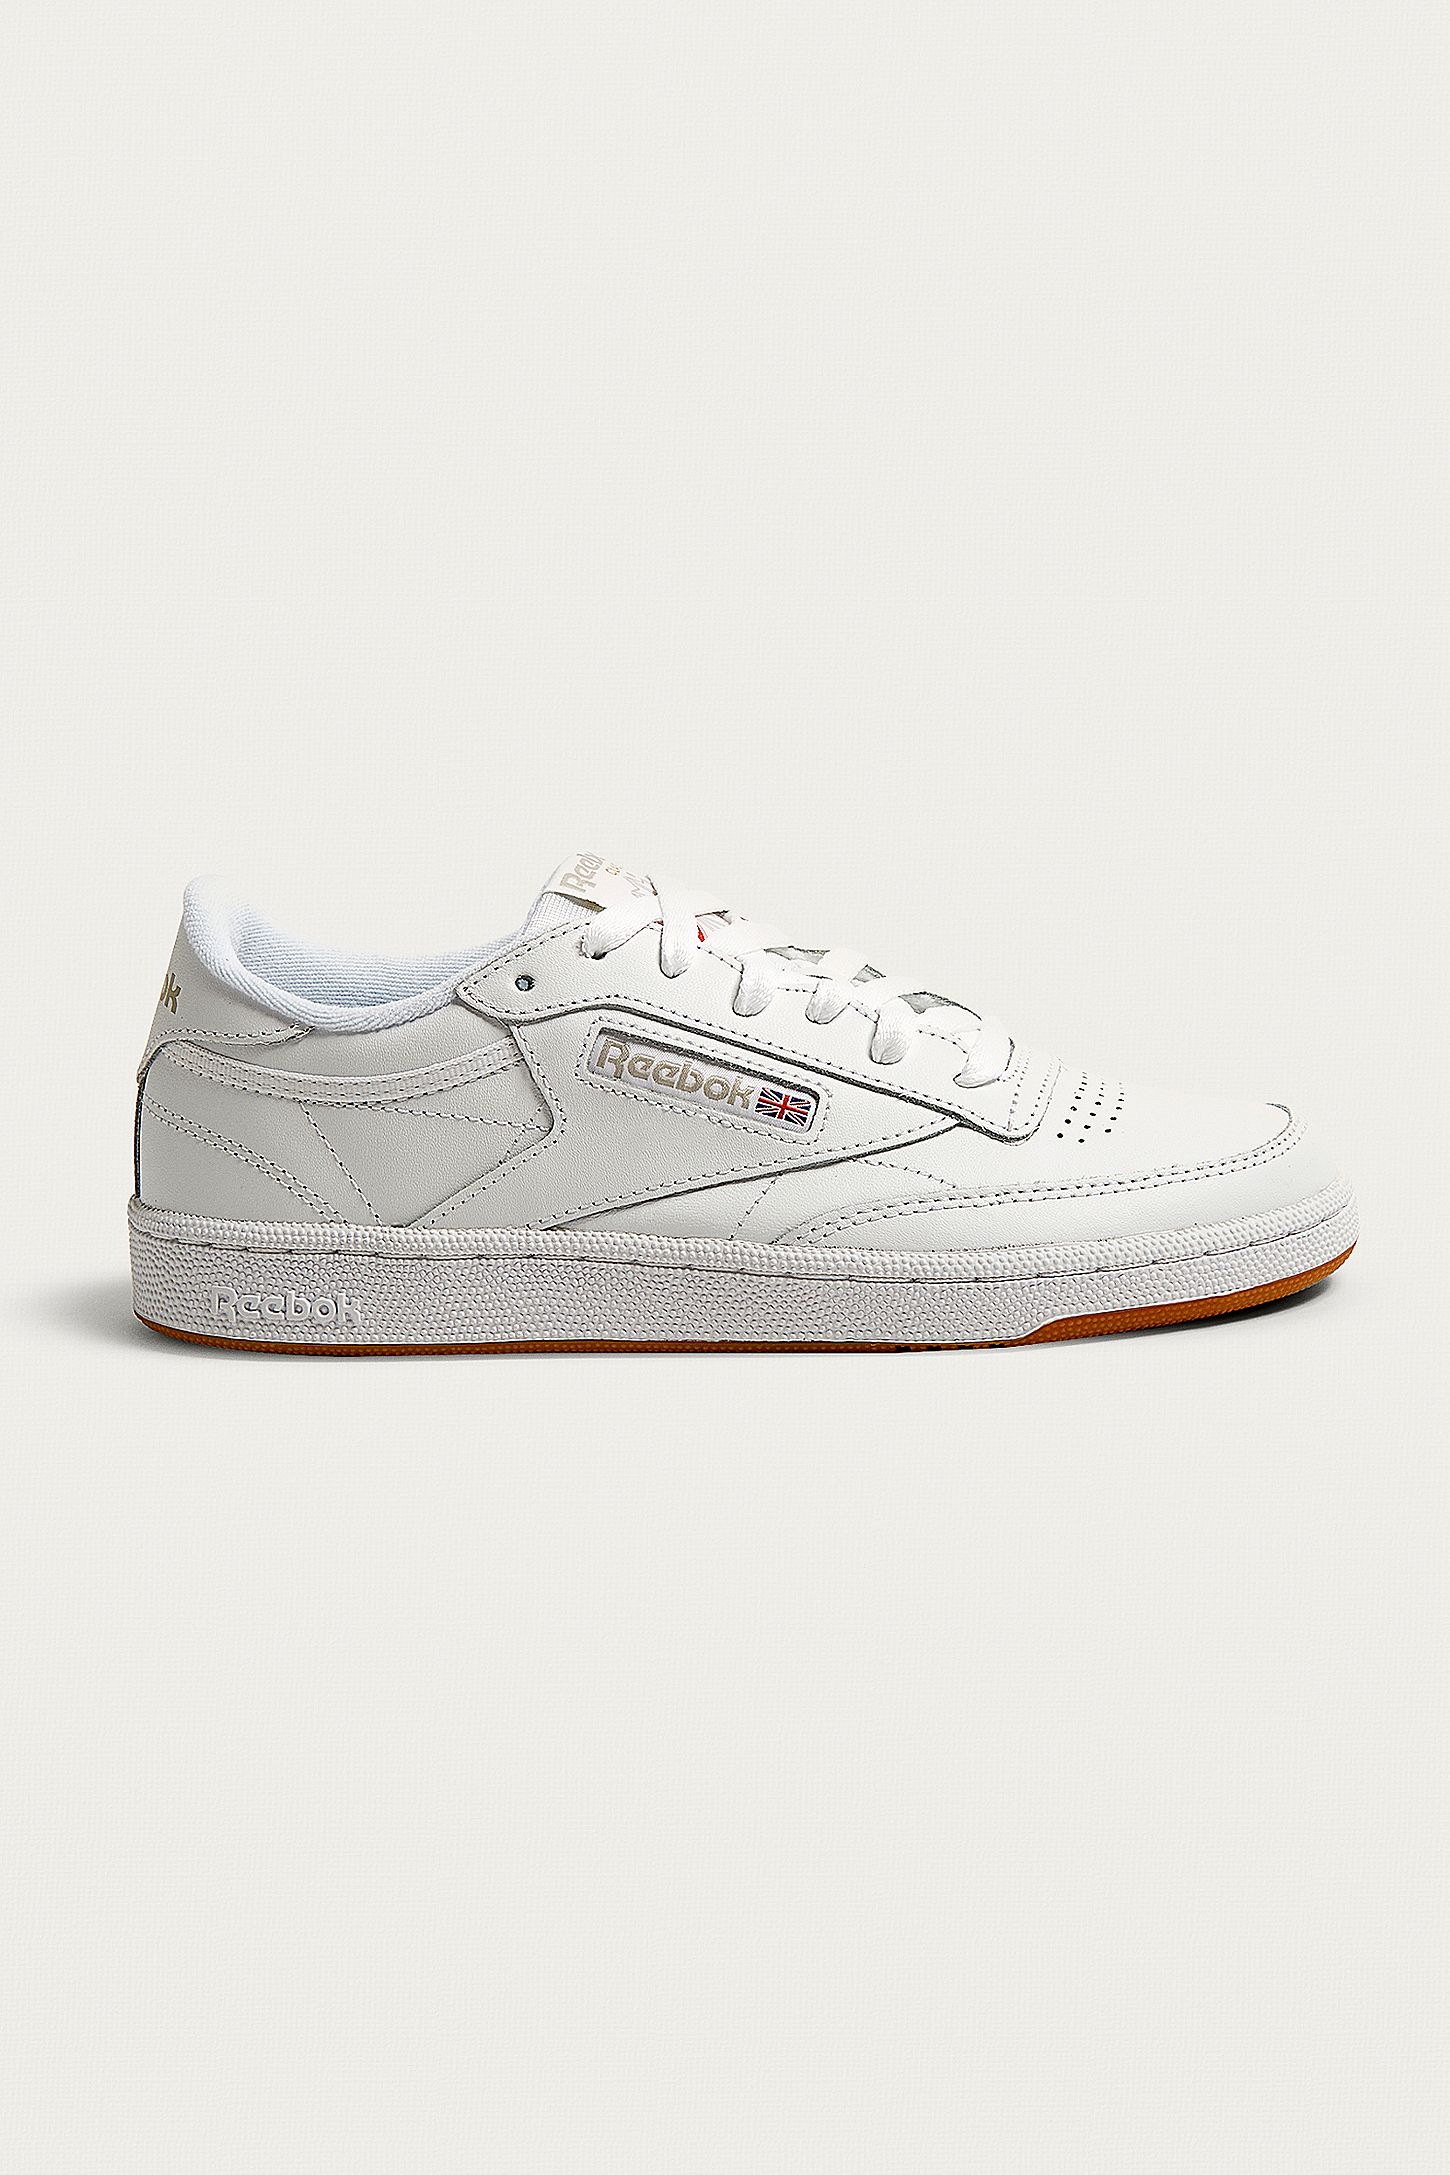 b7a5d5dd2021f Reebok White Club C 85 Gum Sole Trainers. Click on image to zoom. Hover to  zoom. Double Tap to Zoom